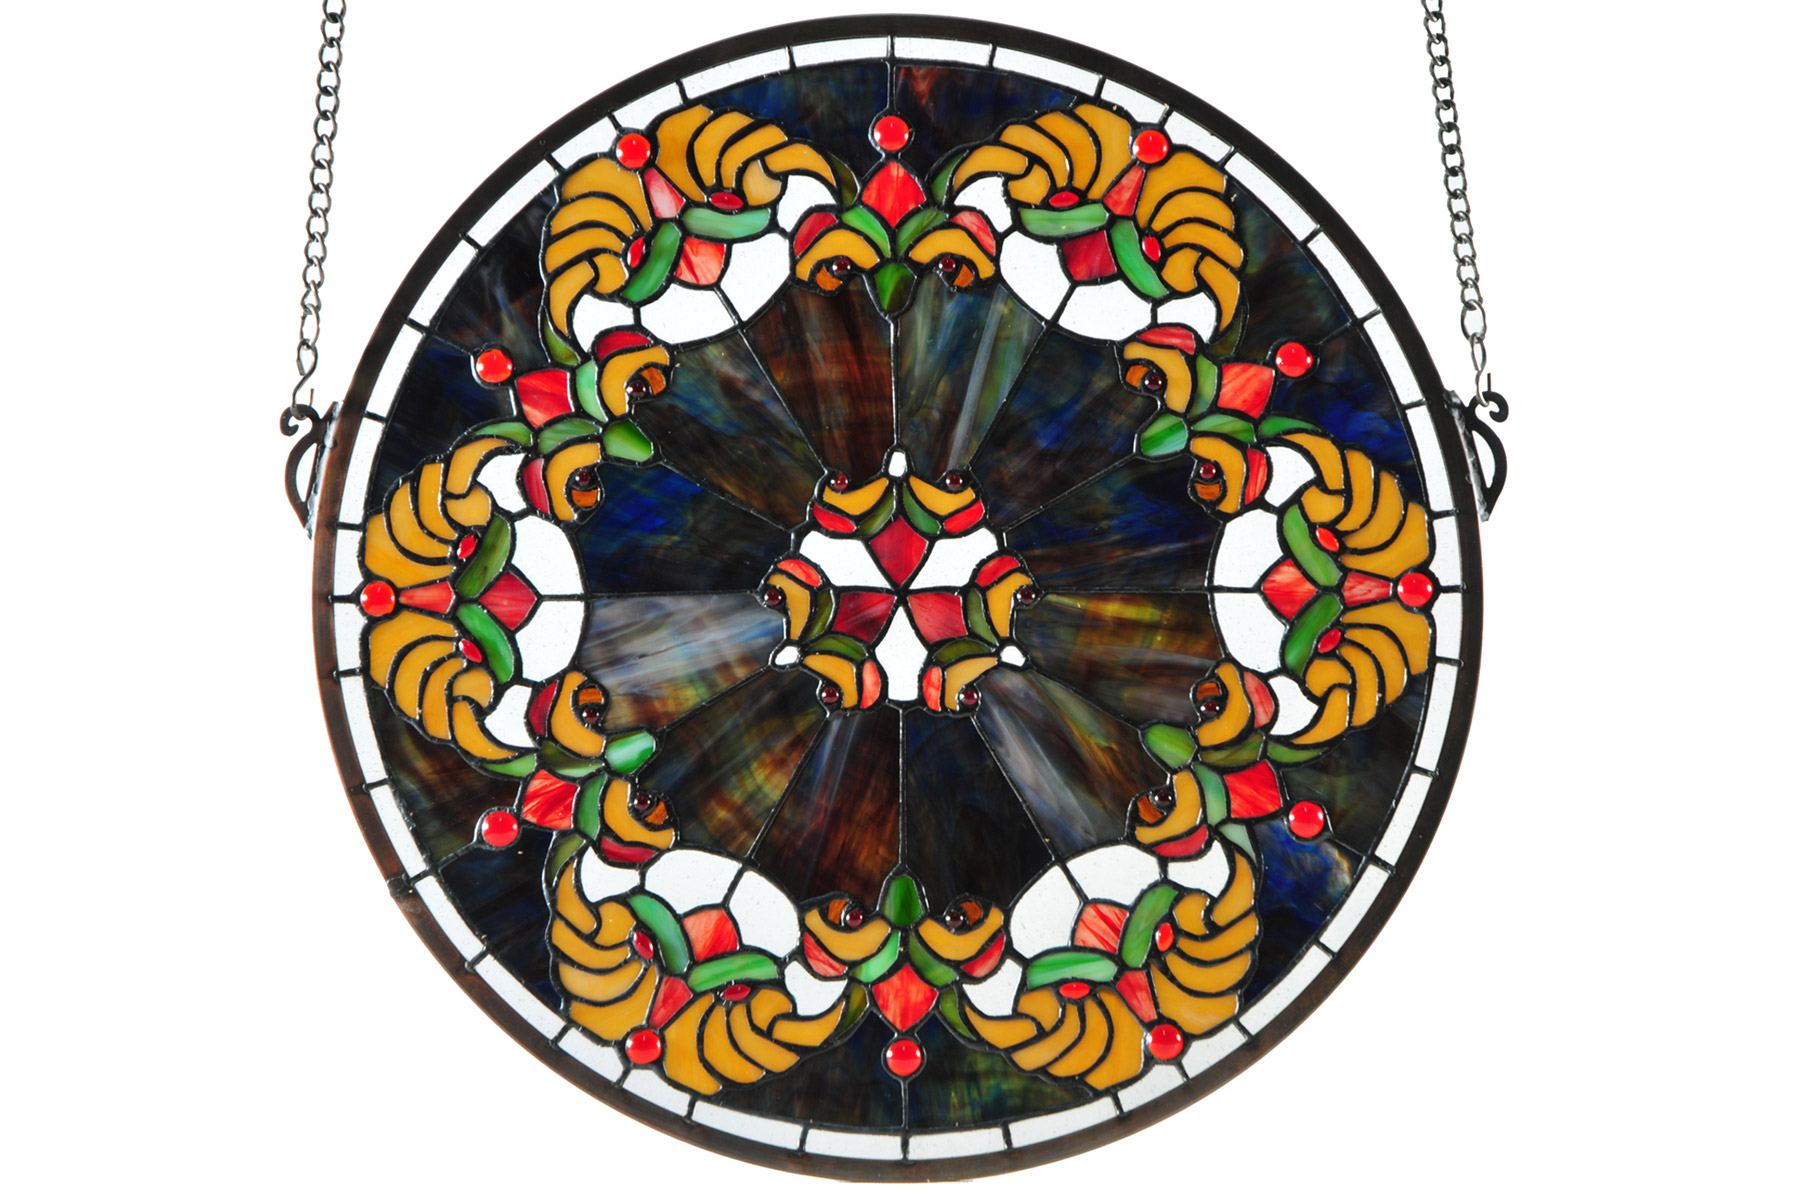 Meyda 127106 Middleton Medallion Stained Glass Window